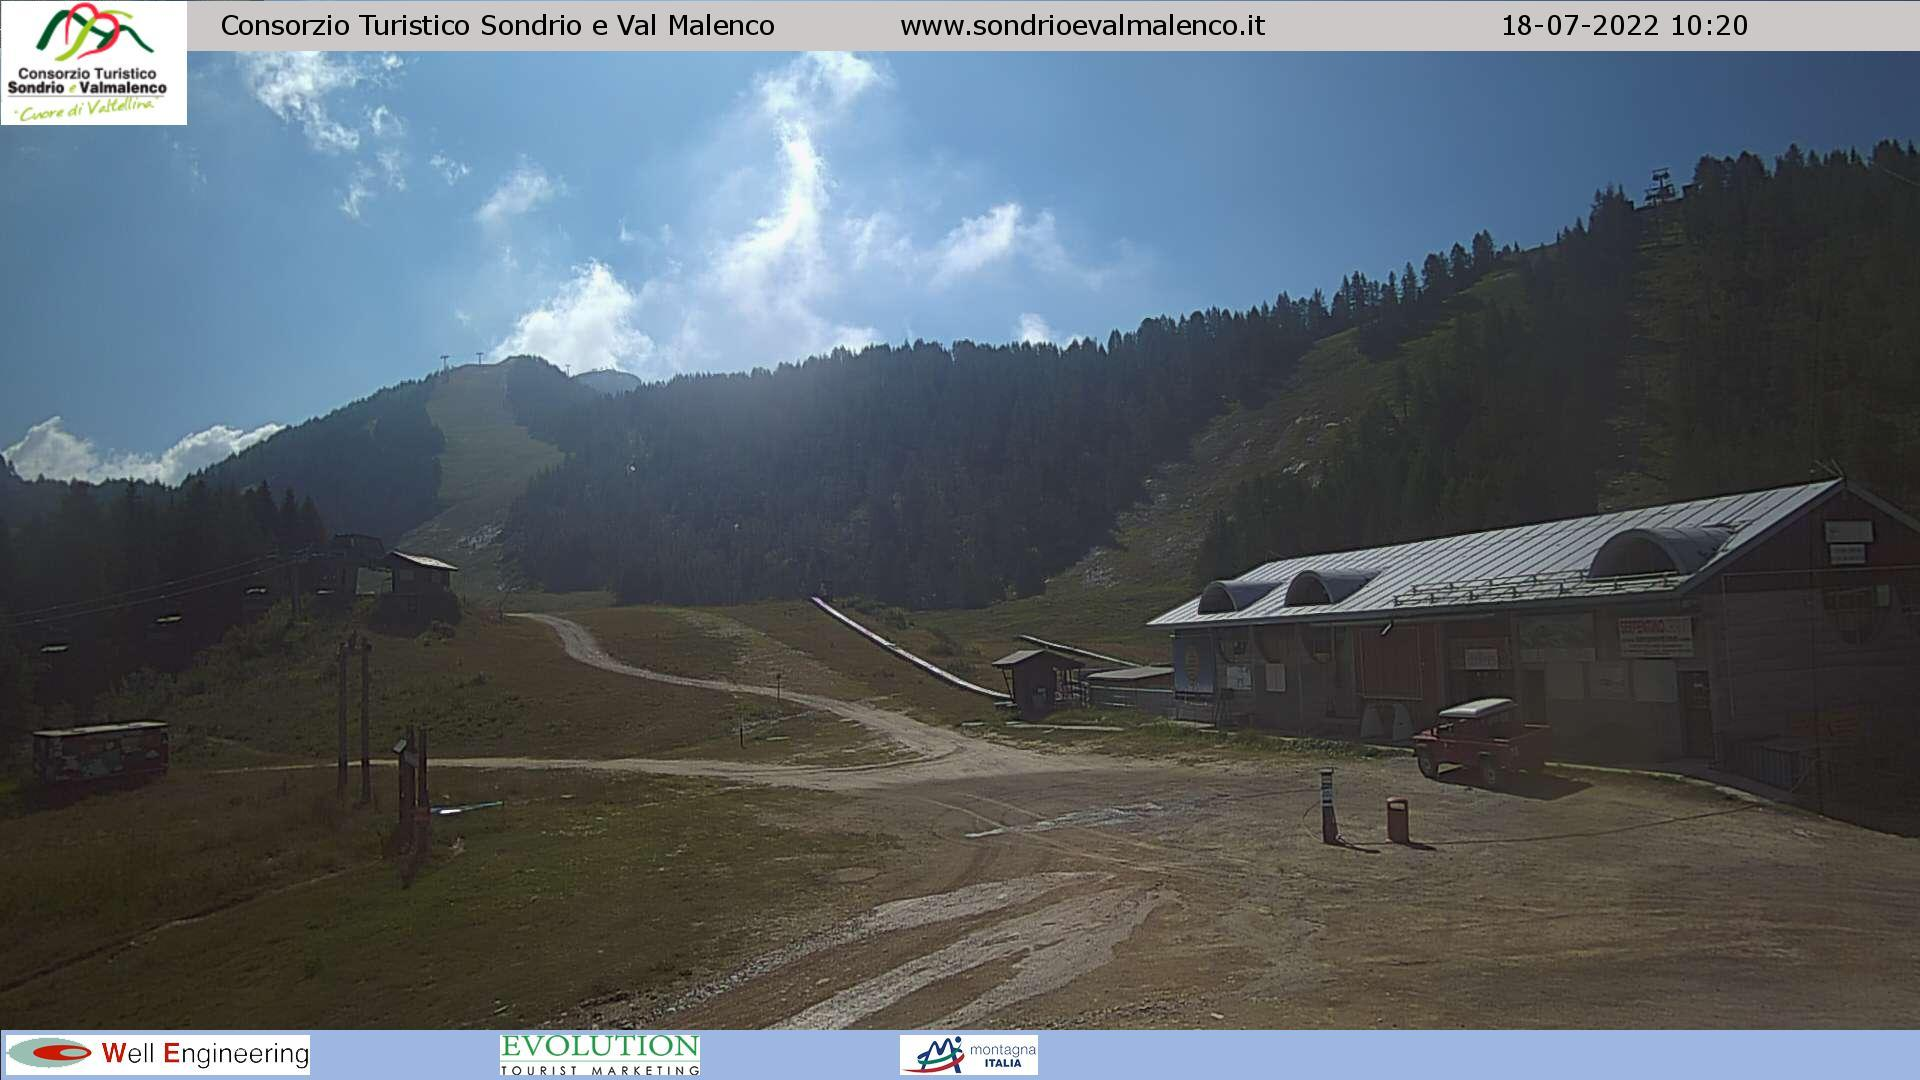 VALMALENCO WEBCAM